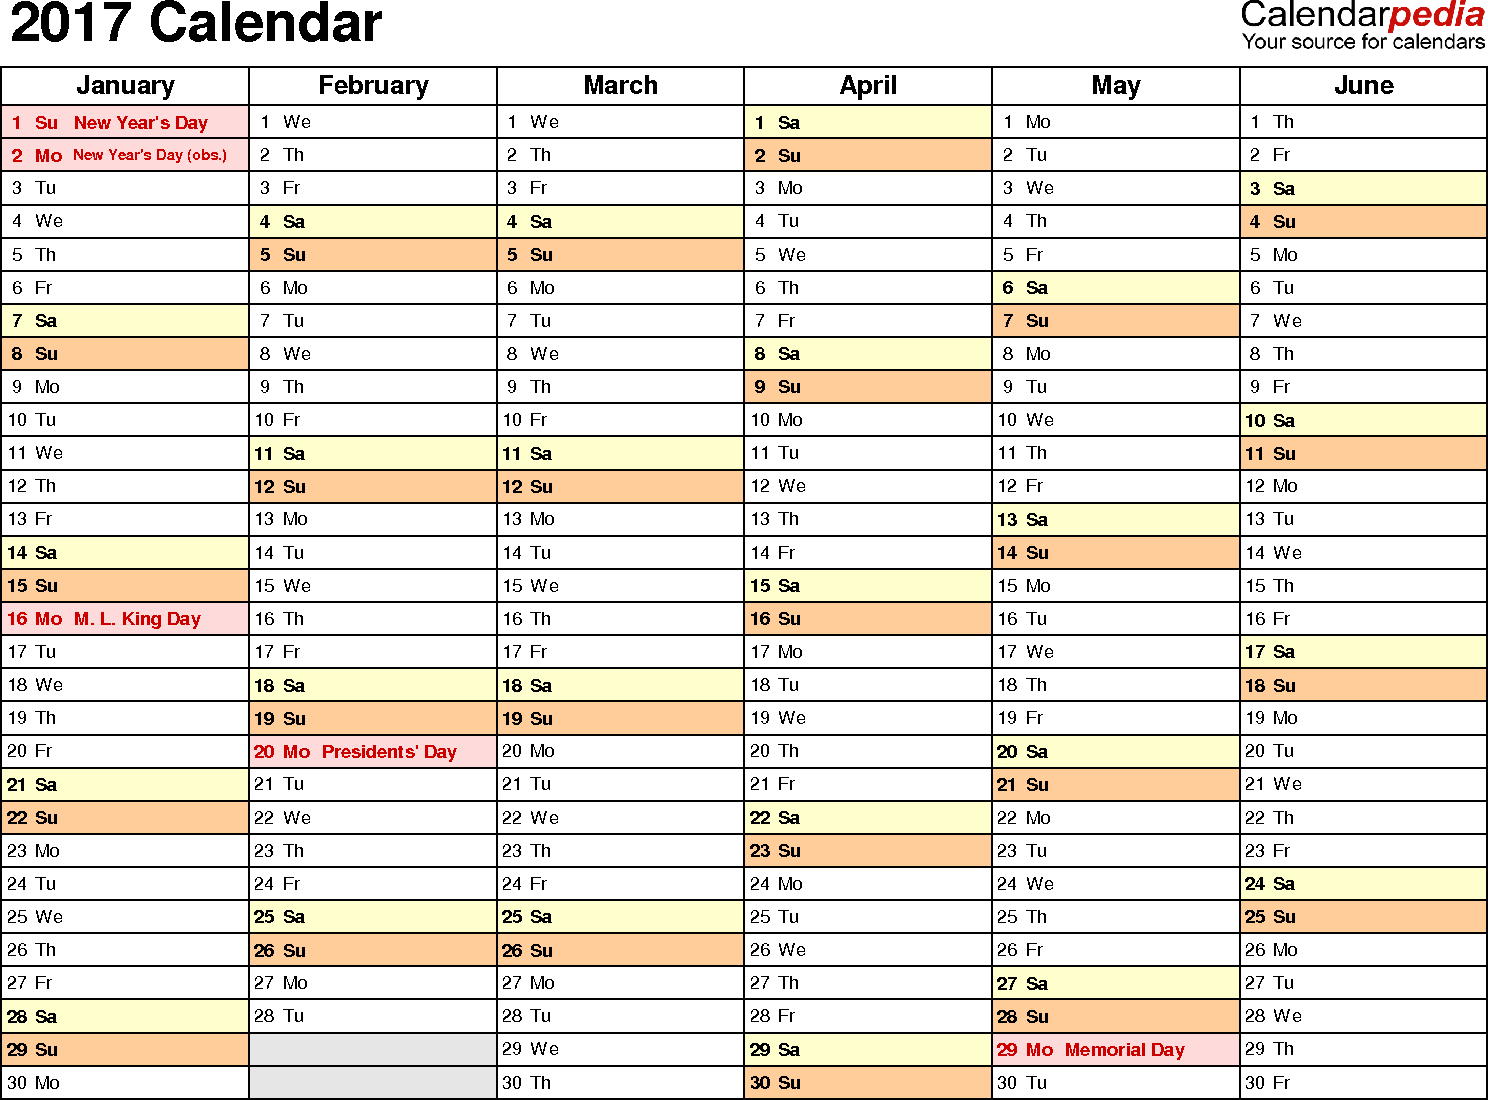 Ediblewildsus  Scenic  Calendar  Download  Free Printable Excel Templates Xls With Inspiring Template   Calendar For Excel Months Horizontally  Pages Landscape Orientation With Enchanting Sensitivity Analysis Excel Also Regression In Excel In Addition Excel Vlookup Function And Cagr Excel As Well As Excel Schedule Template Additionally Insert Checkbox In Excel From Calendarpediacom With Ediblewildsus  Inspiring  Calendar  Download  Free Printable Excel Templates Xls With Enchanting Template   Calendar For Excel Months Horizontally  Pages Landscape Orientation And Scenic Sensitivity Analysis Excel Also Regression In Excel In Addition Excel Vlookup Function From Calendarpediacom